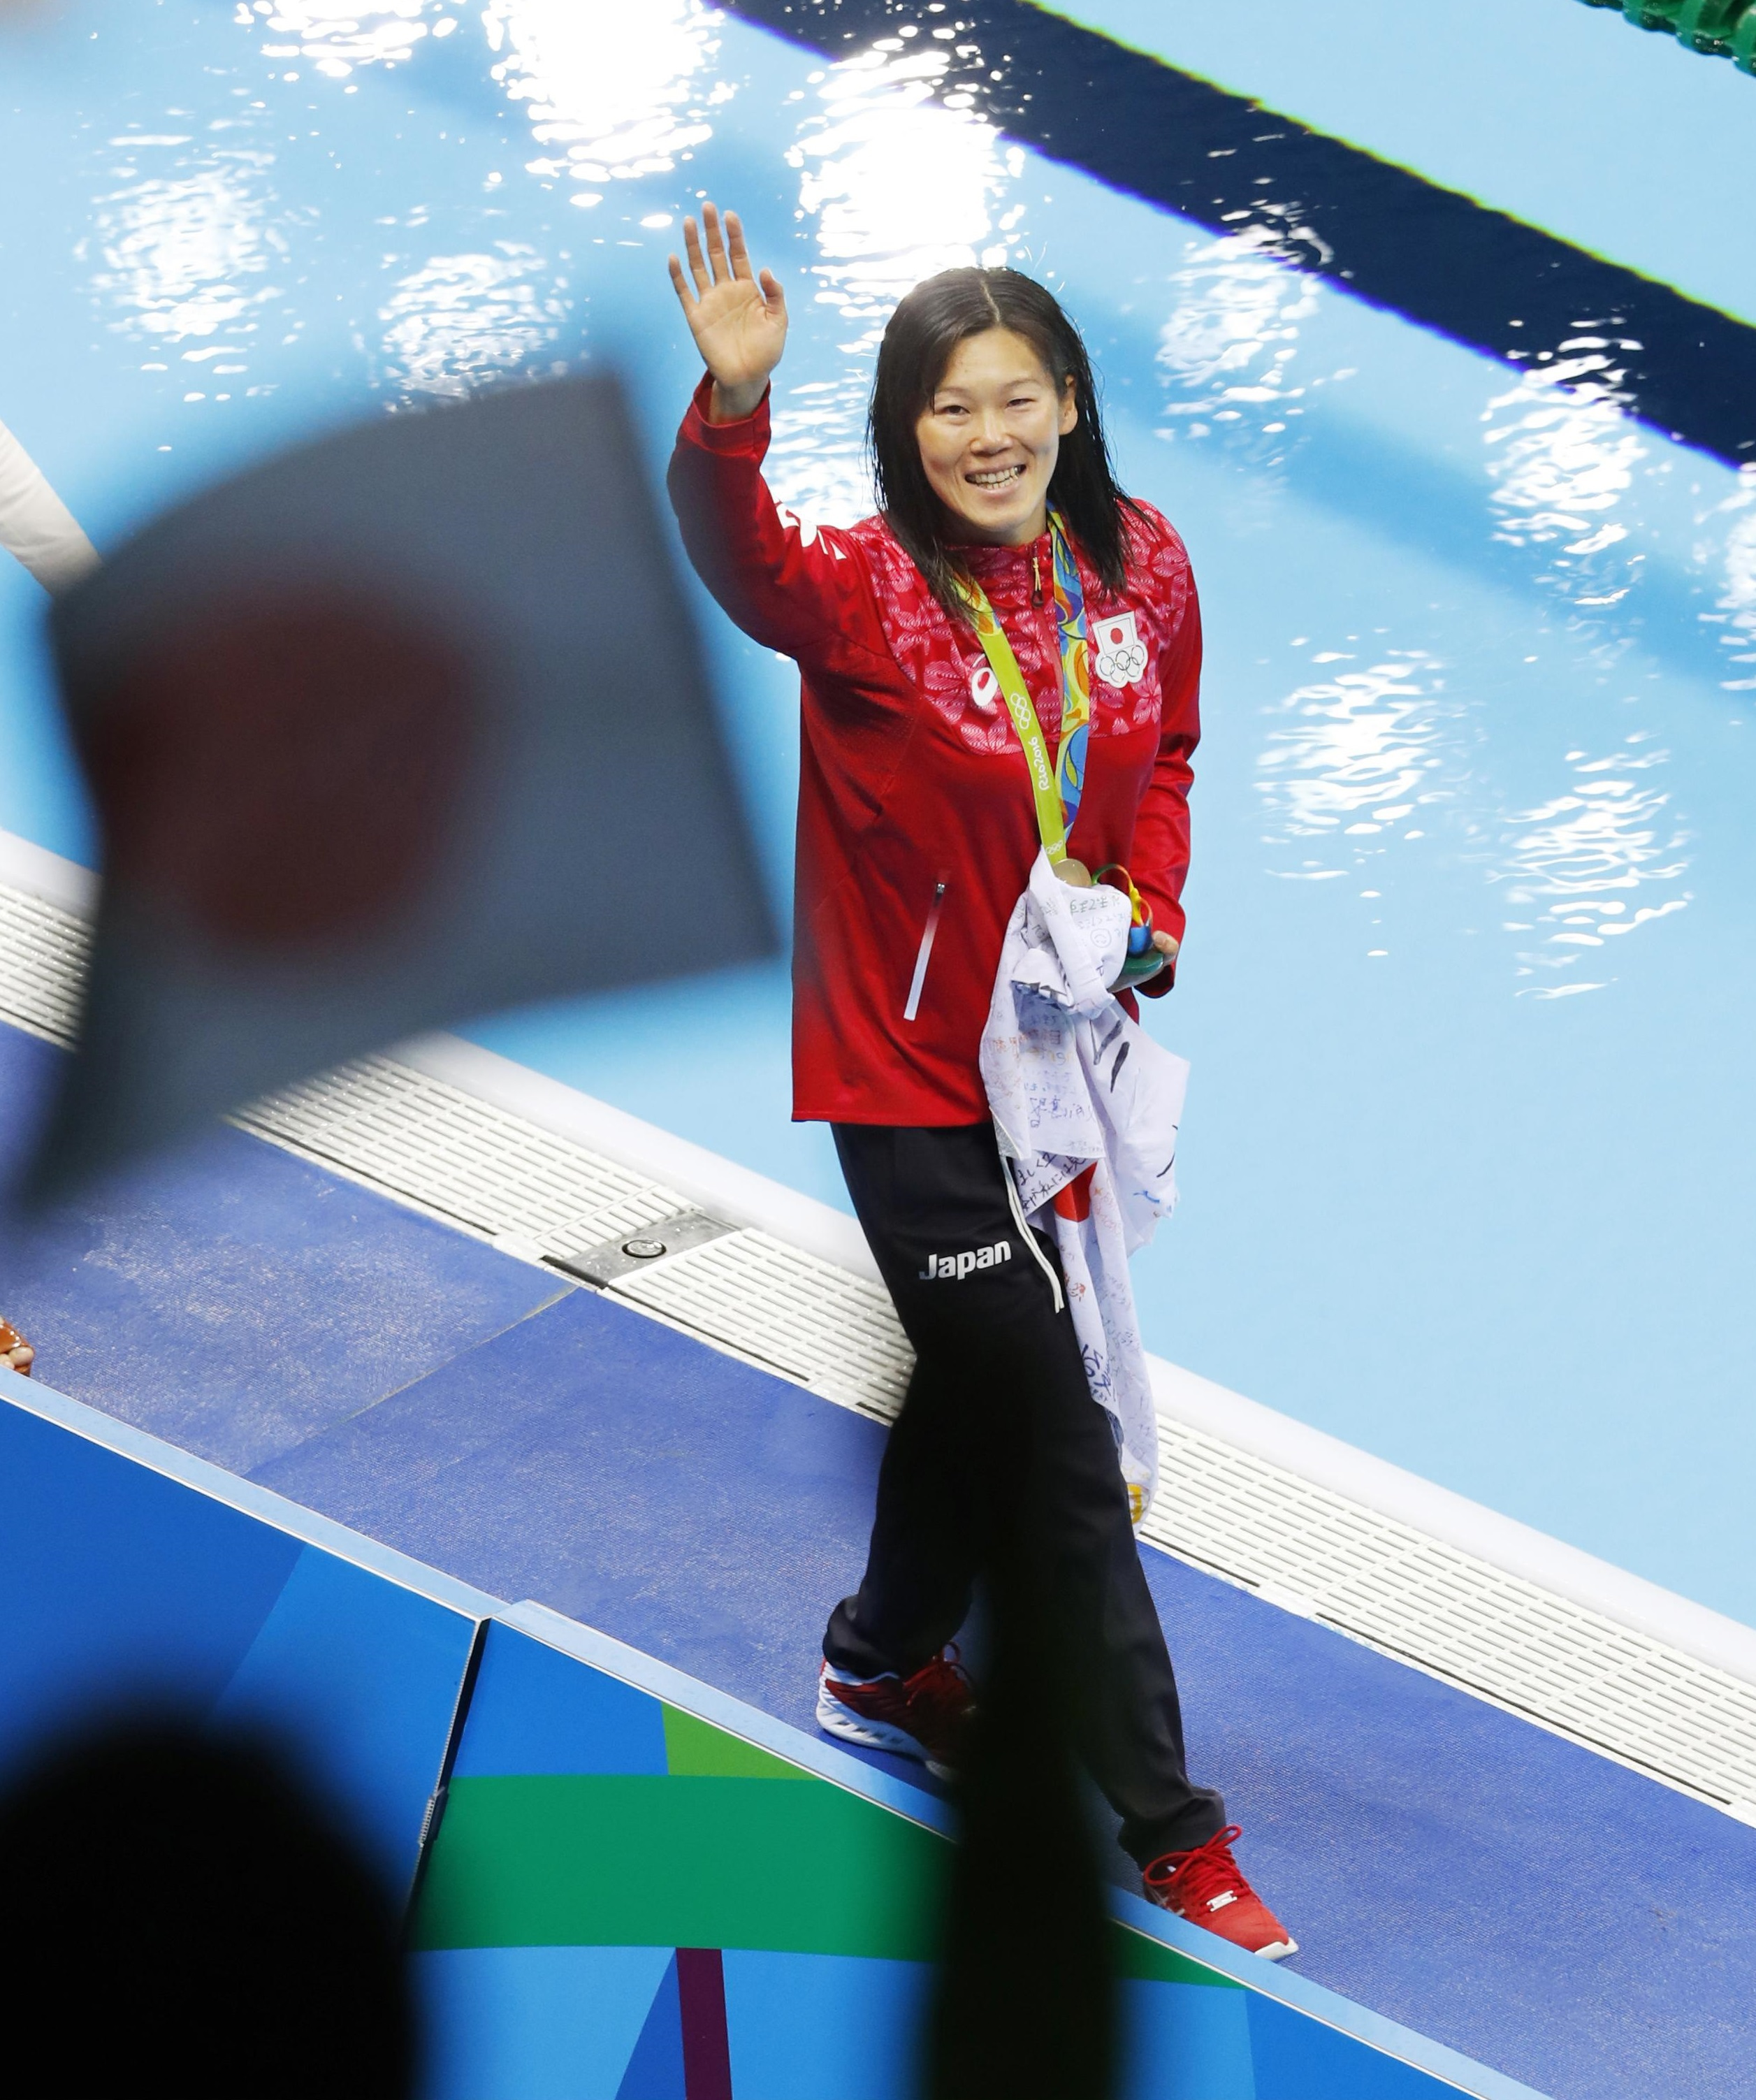 Japan's Rie Kaneto waves to fans in the stands after she won in the women's 200-meter breaststroke at the Rio de Janeiro Olympics on Thursday. | KYODO